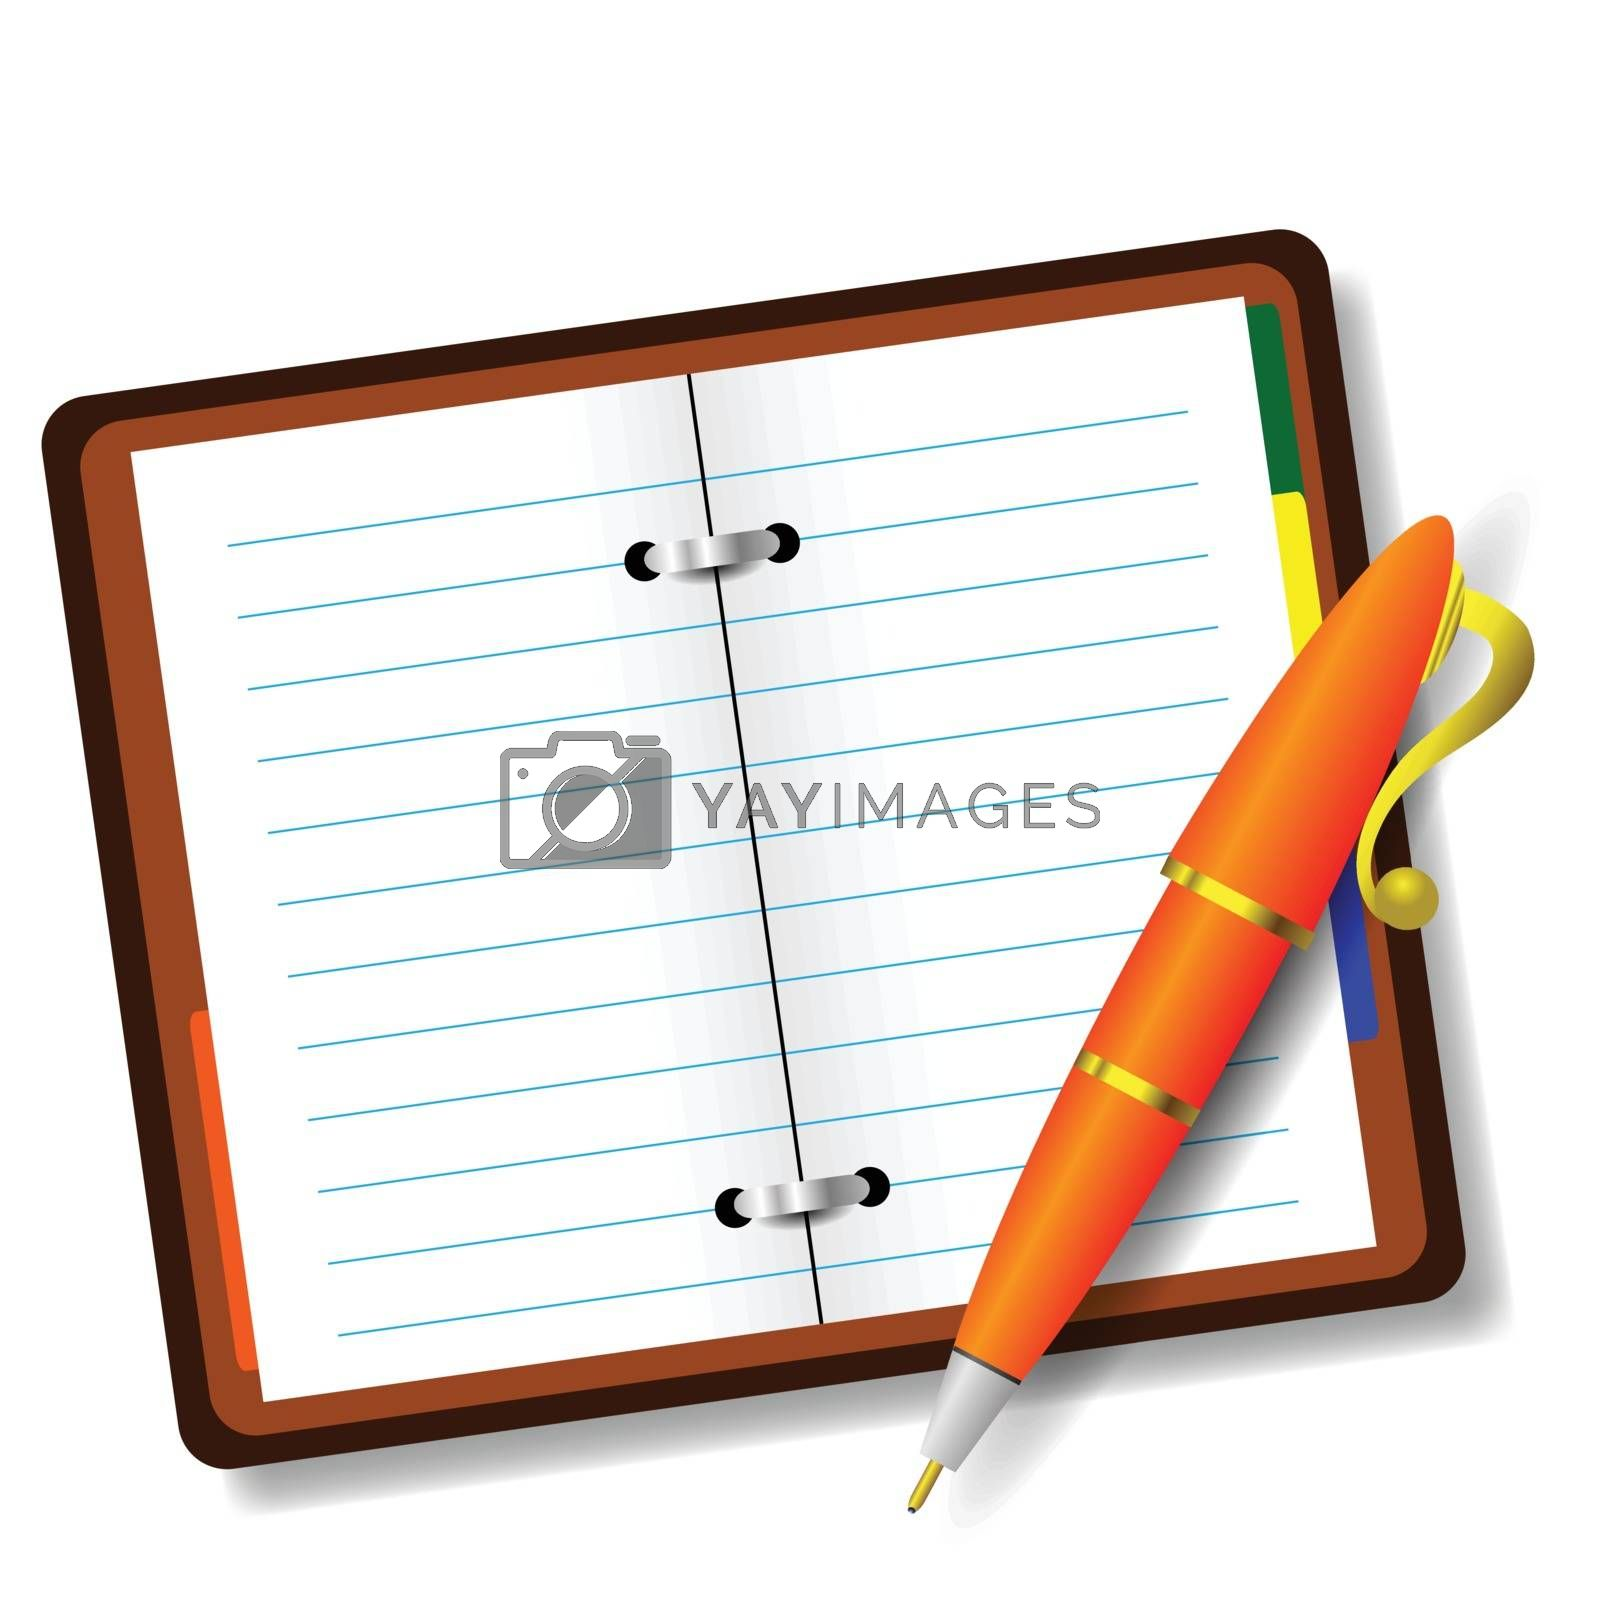 Royalty free image of pen and notebook by valeo5